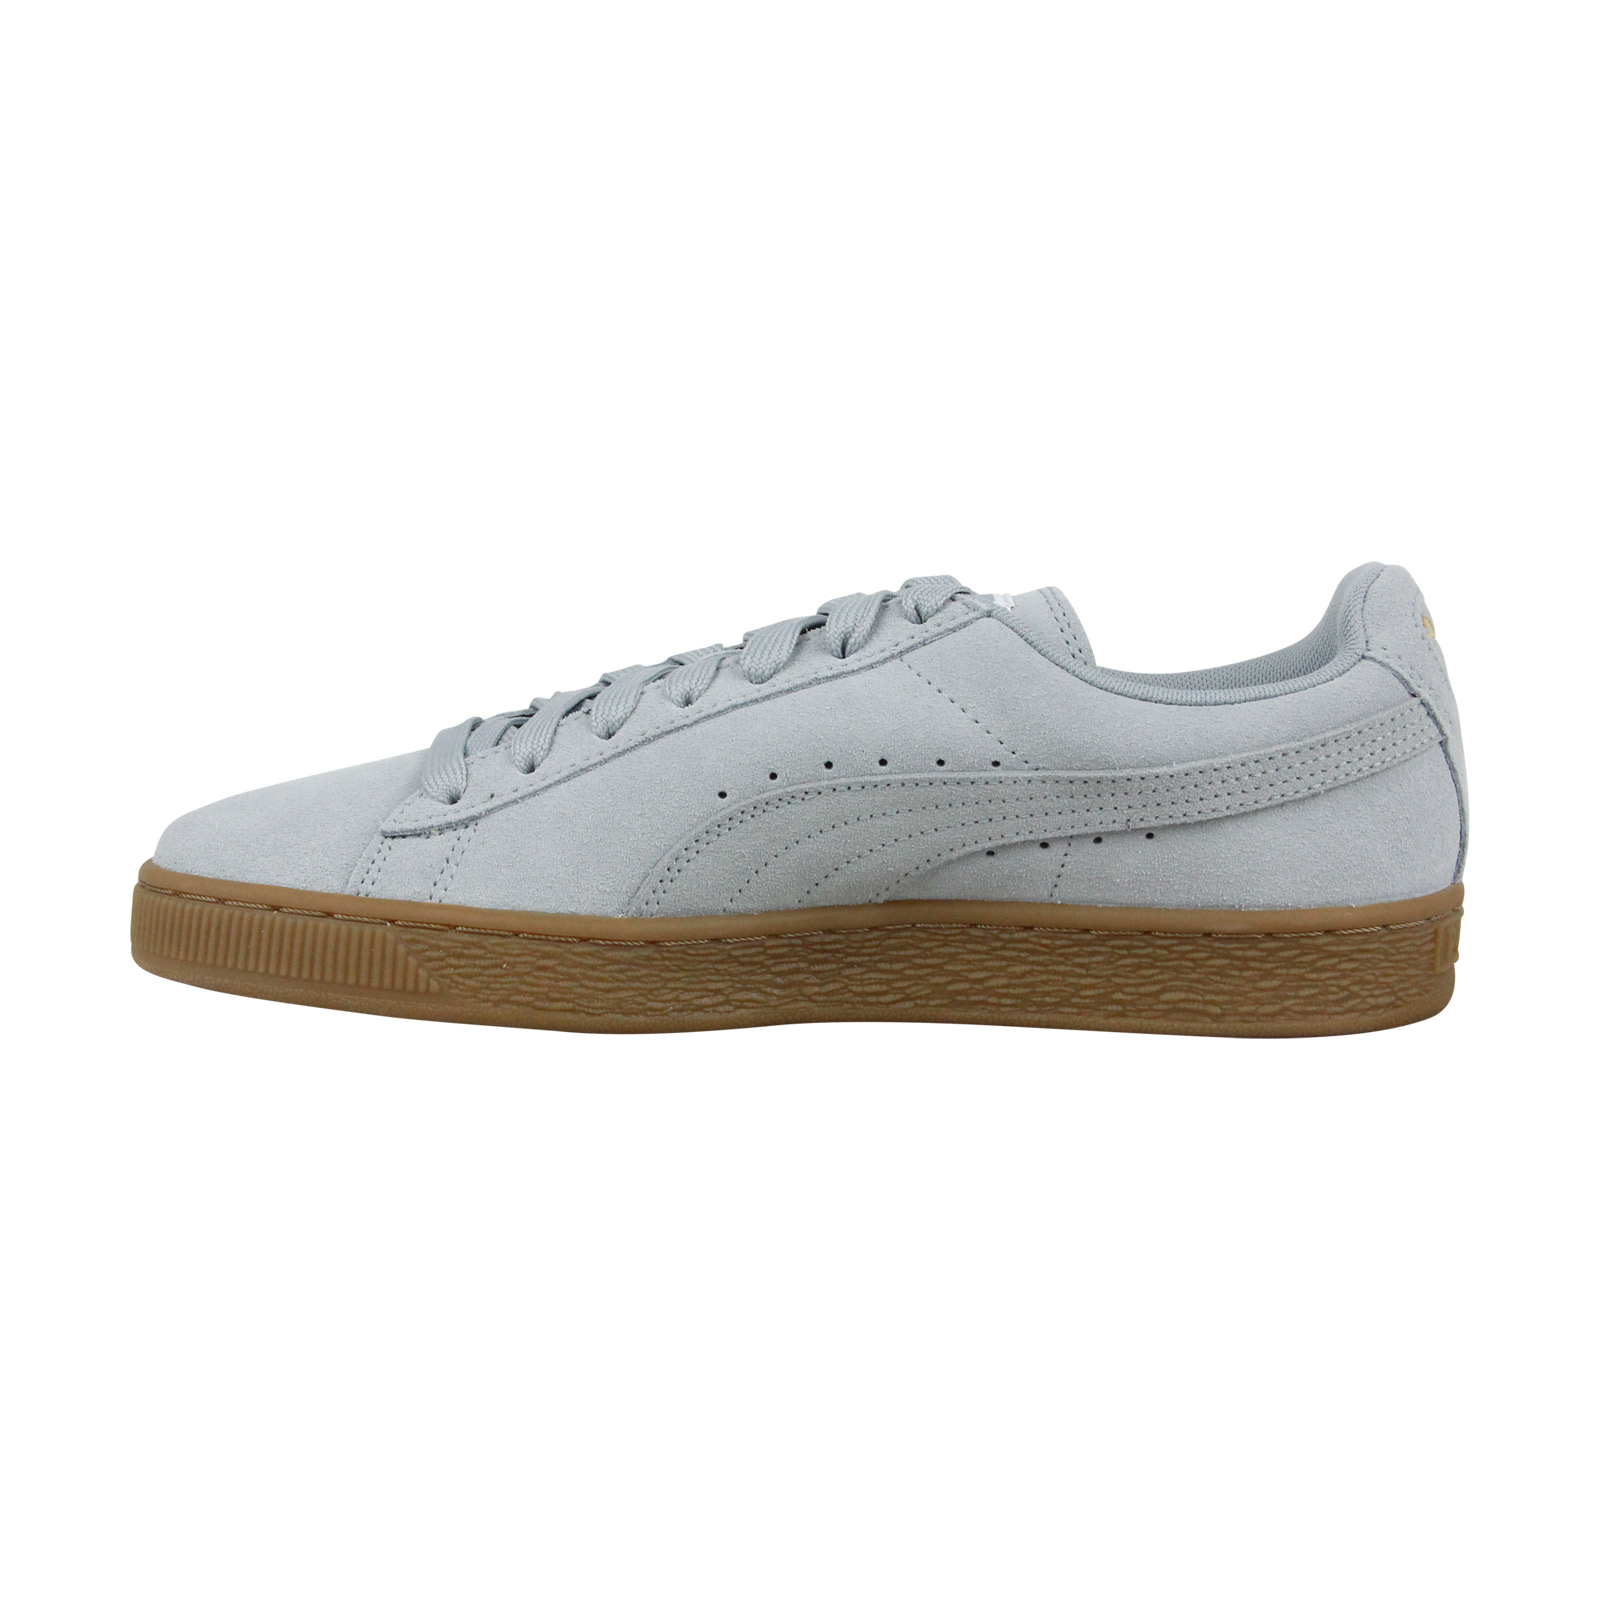 Puma Classic Gum Homme Gray Suede Up Lace Sneakers 54RA3Lcjq